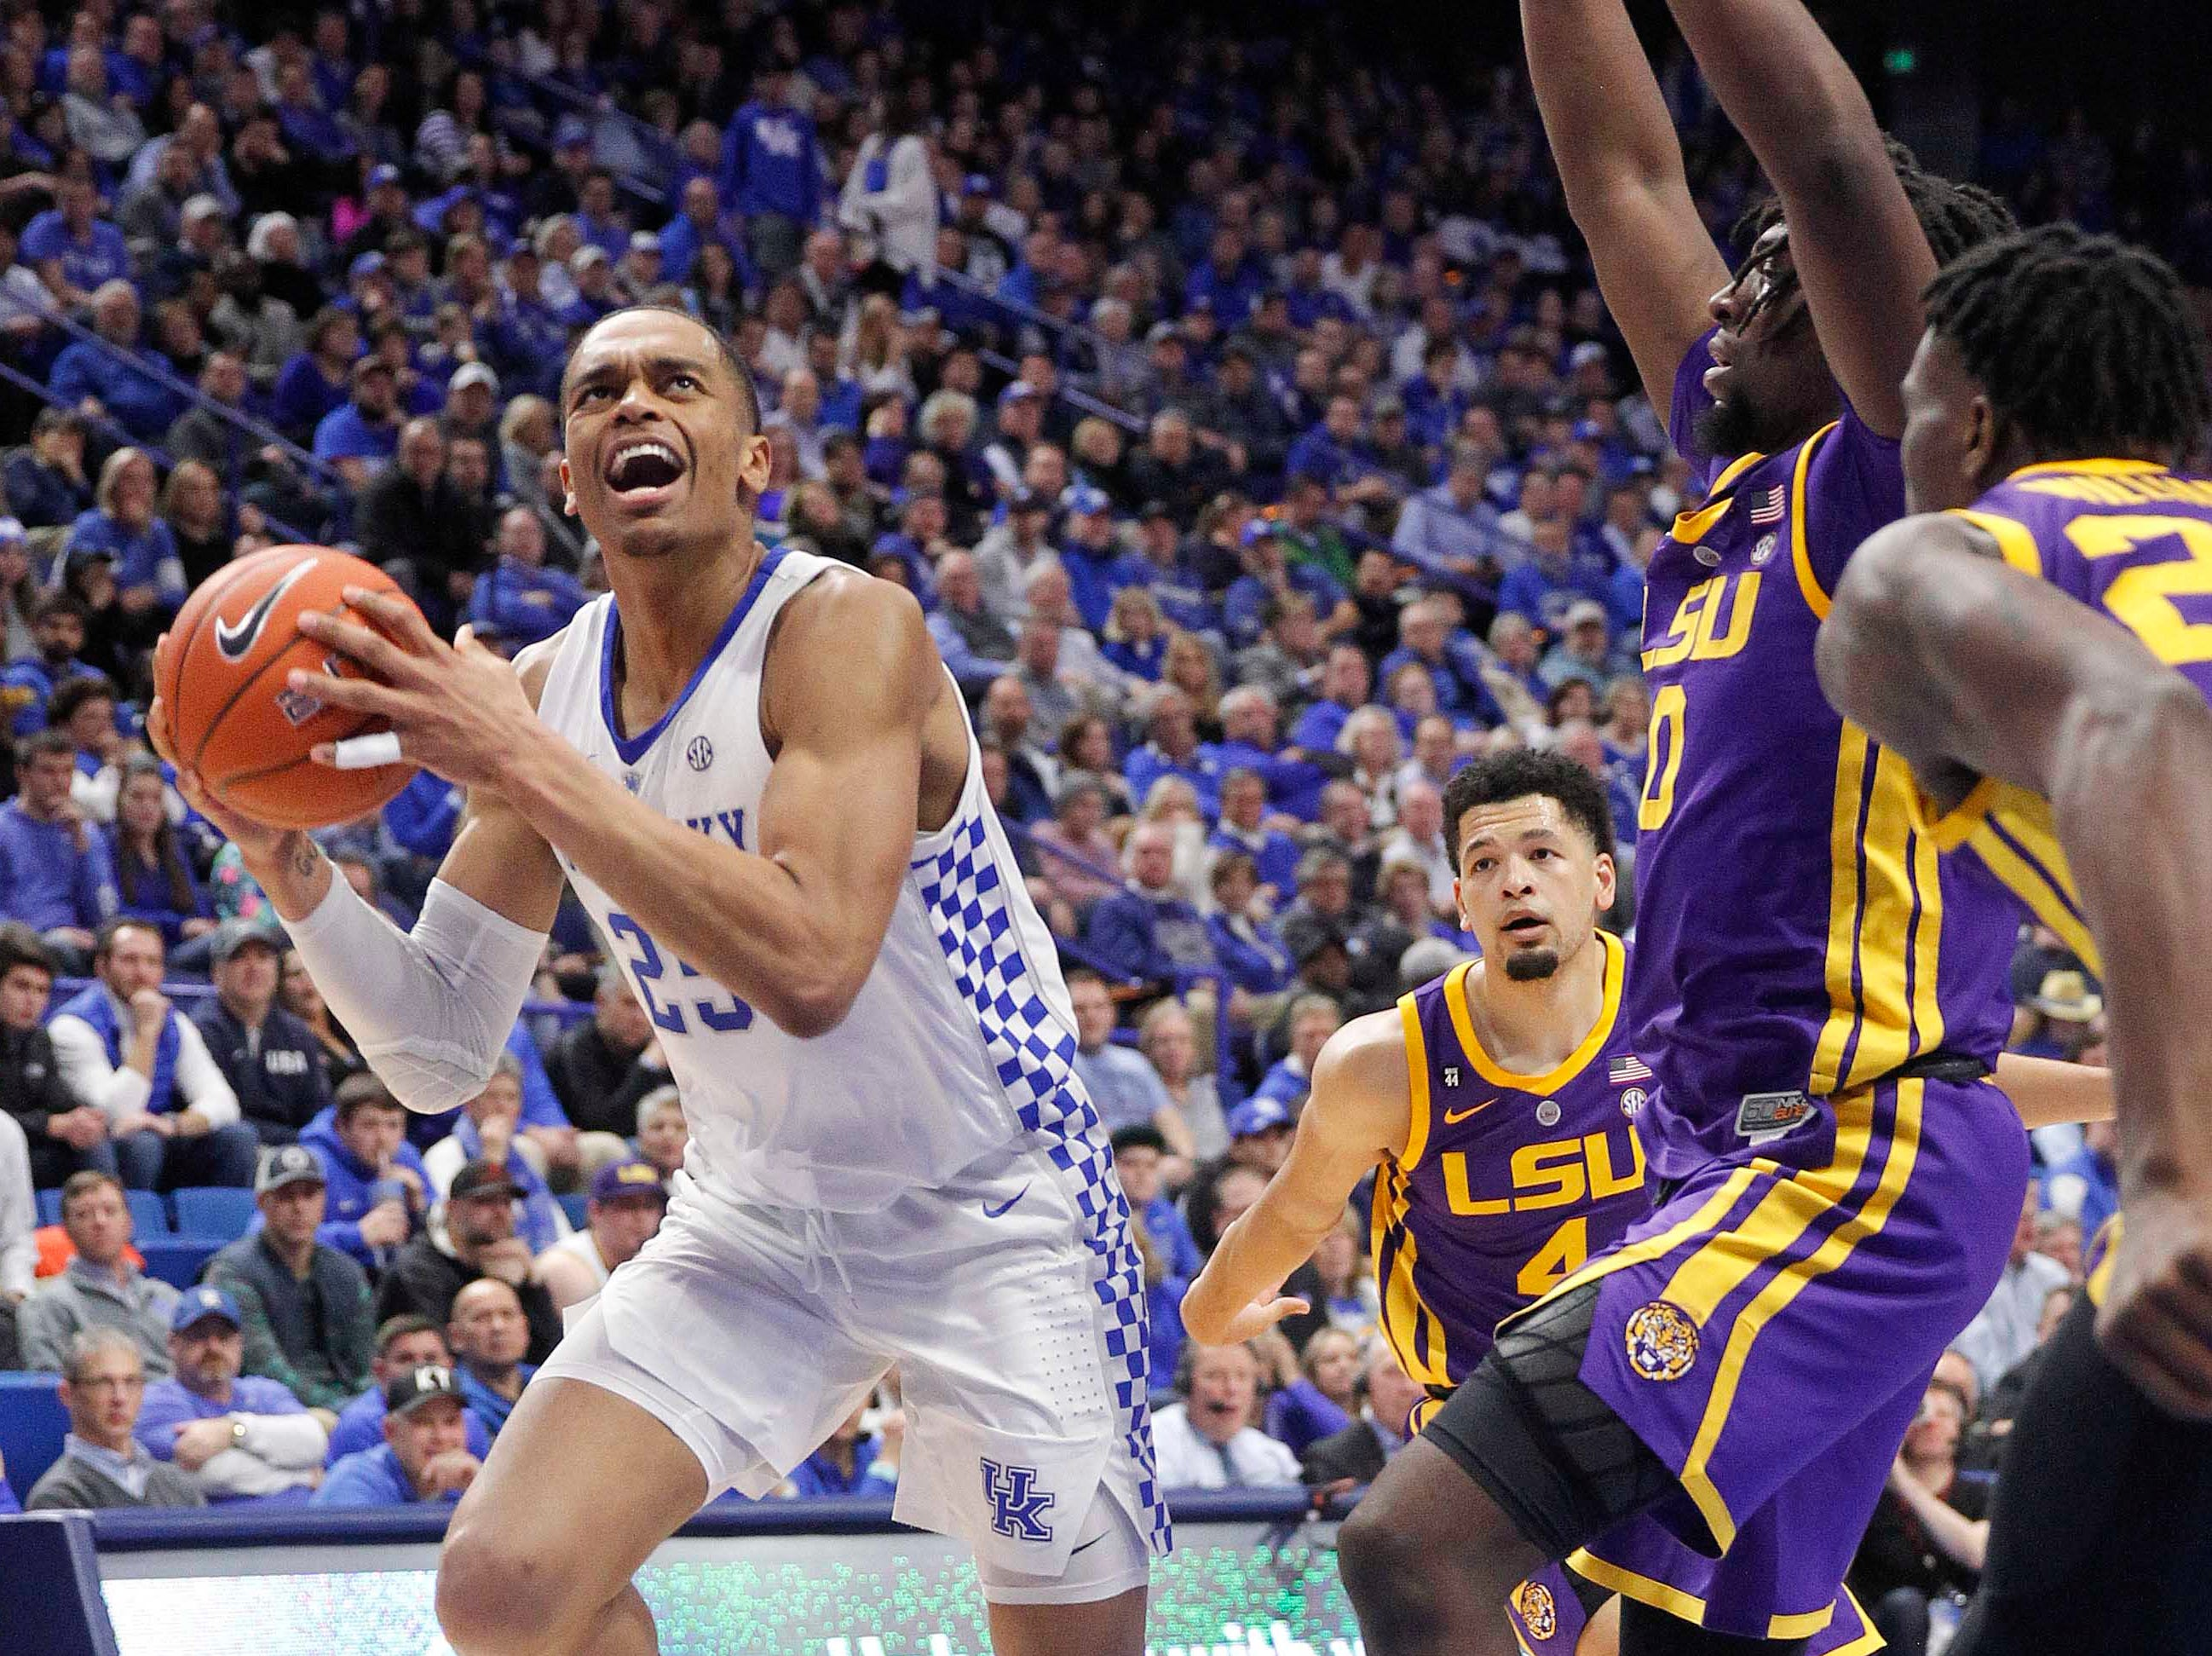 Feb 12, 2019; Lexington, KY, USA; Kentucky Wildcats forward PJ Washington (25) shoots the ball against the LSU Tigers in the second half at Rupp Arena. Mandatory Credit: Mark Zerof-USA TODAY Sports